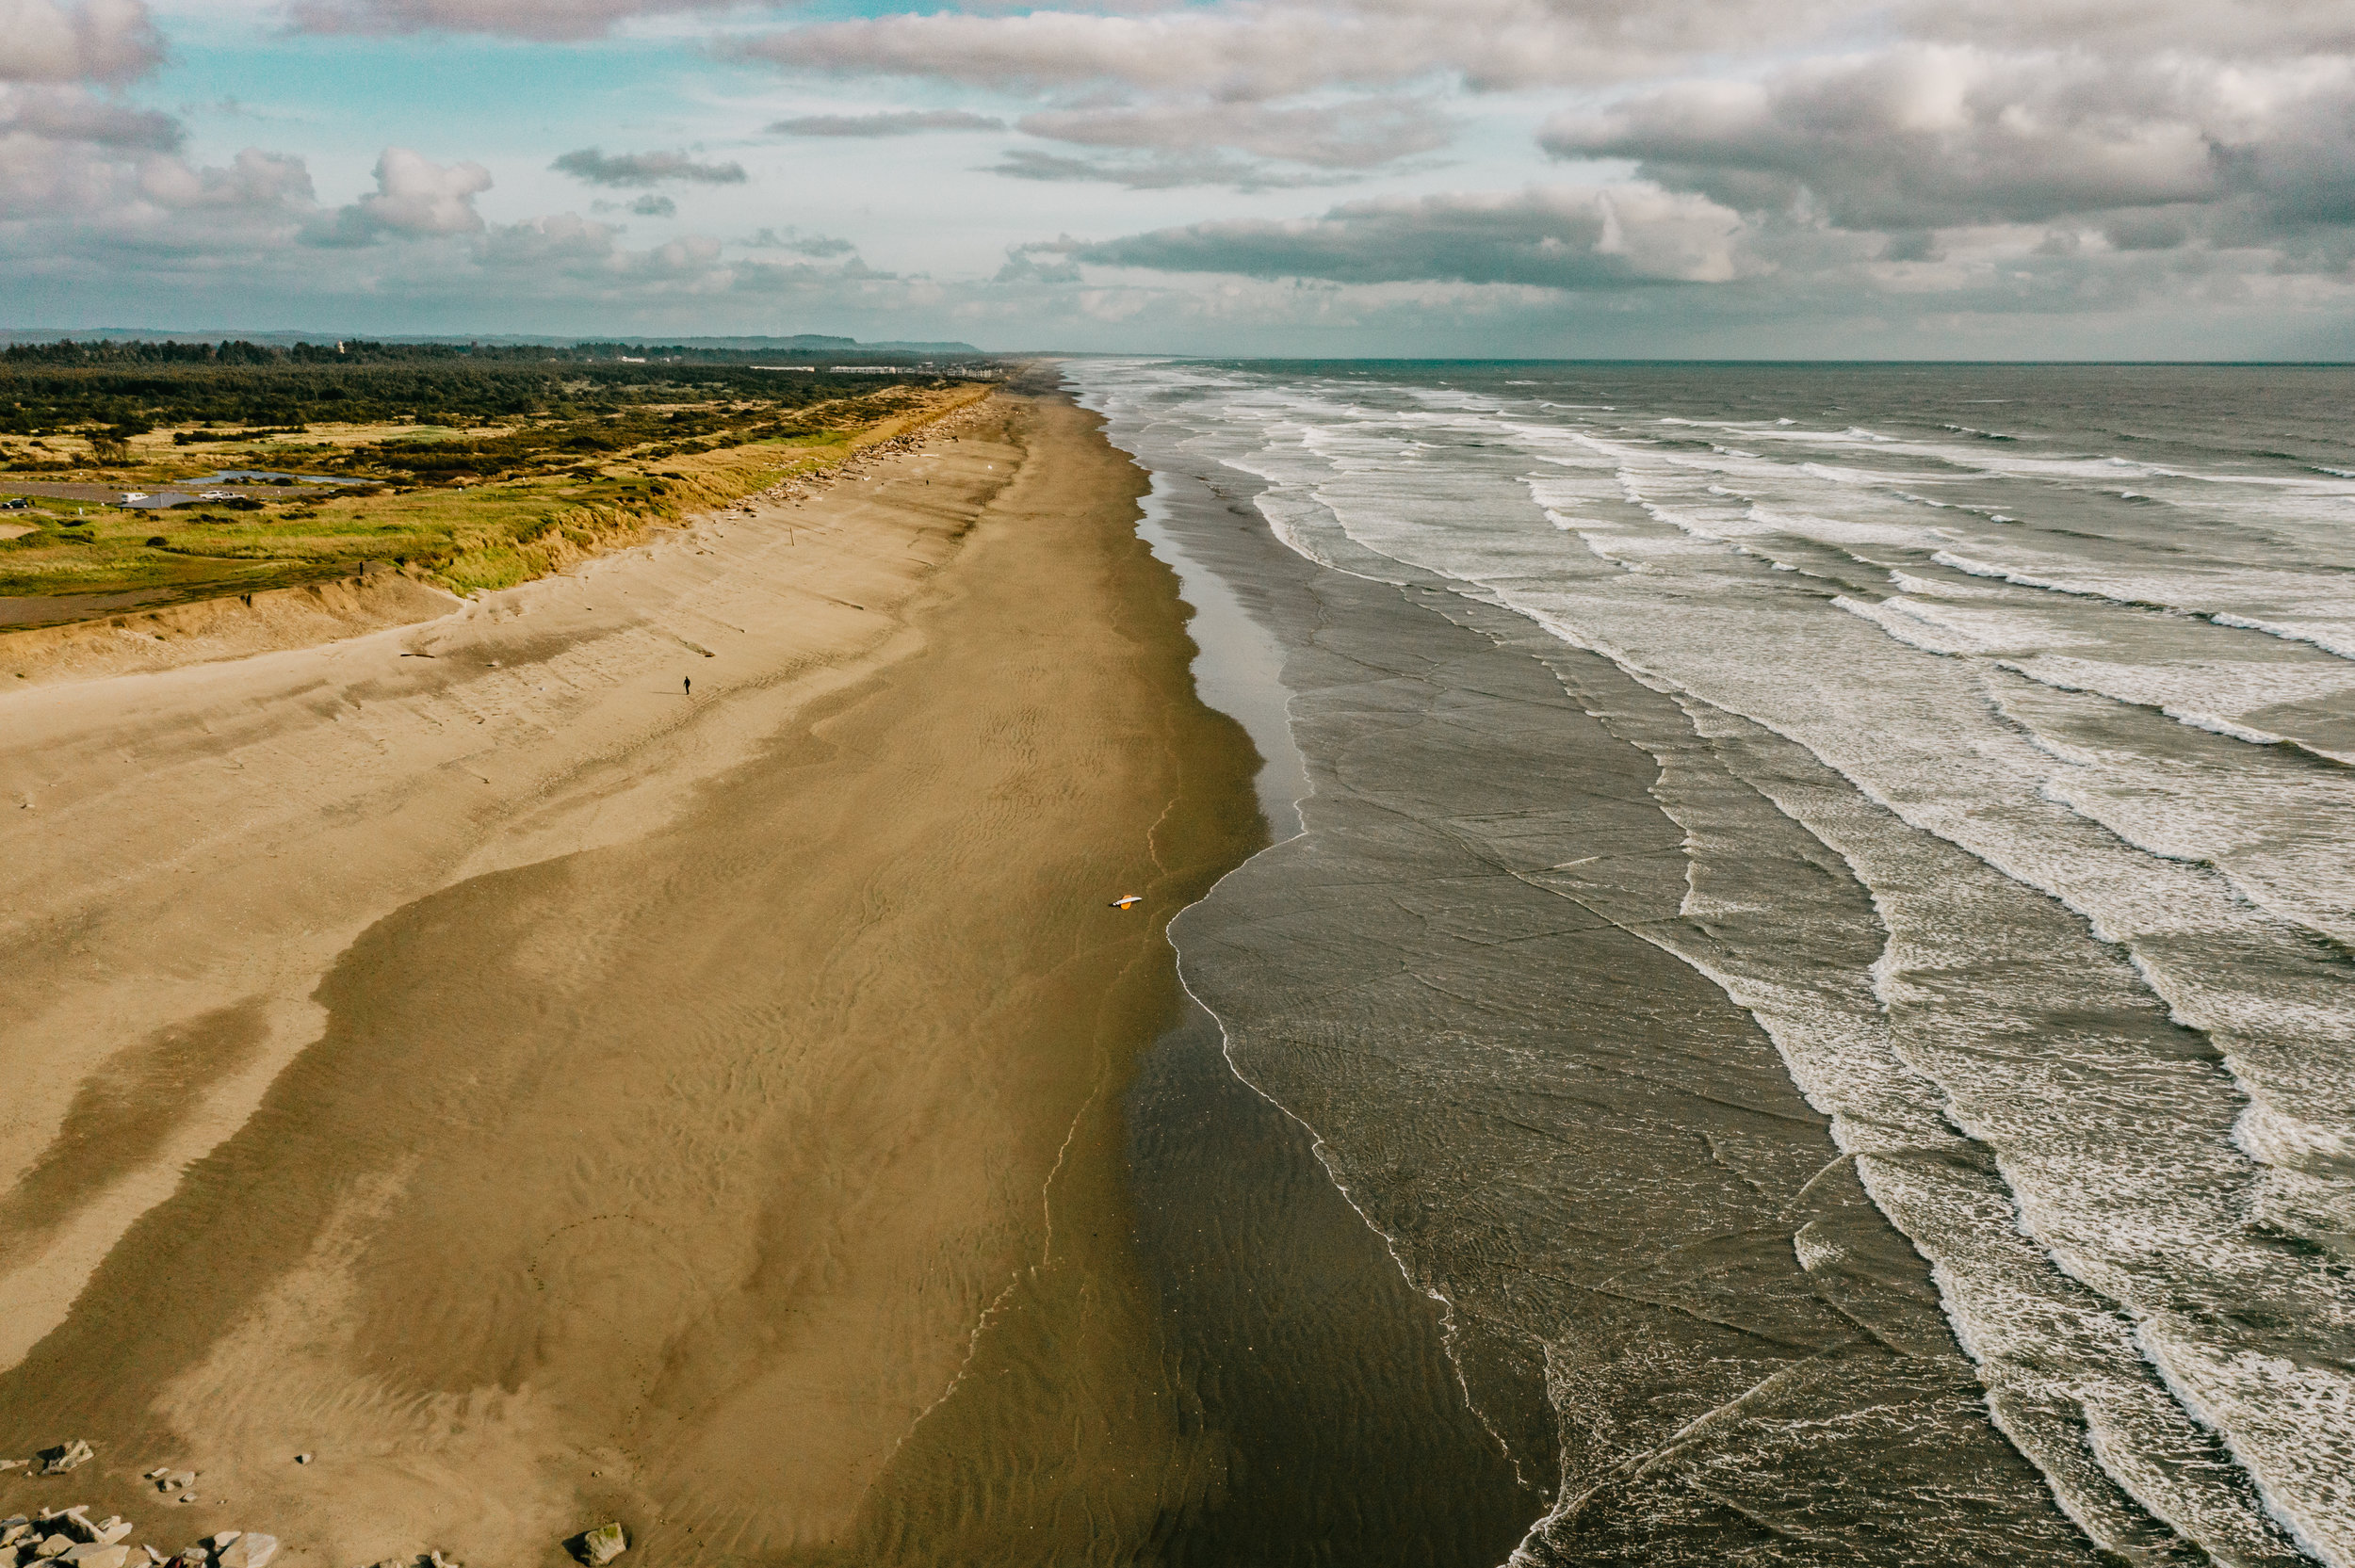 #3 Westport Area Beaches - Discover Westport's beaches! With sand as far as the eye can see, you can find your own space to recharge and relax.